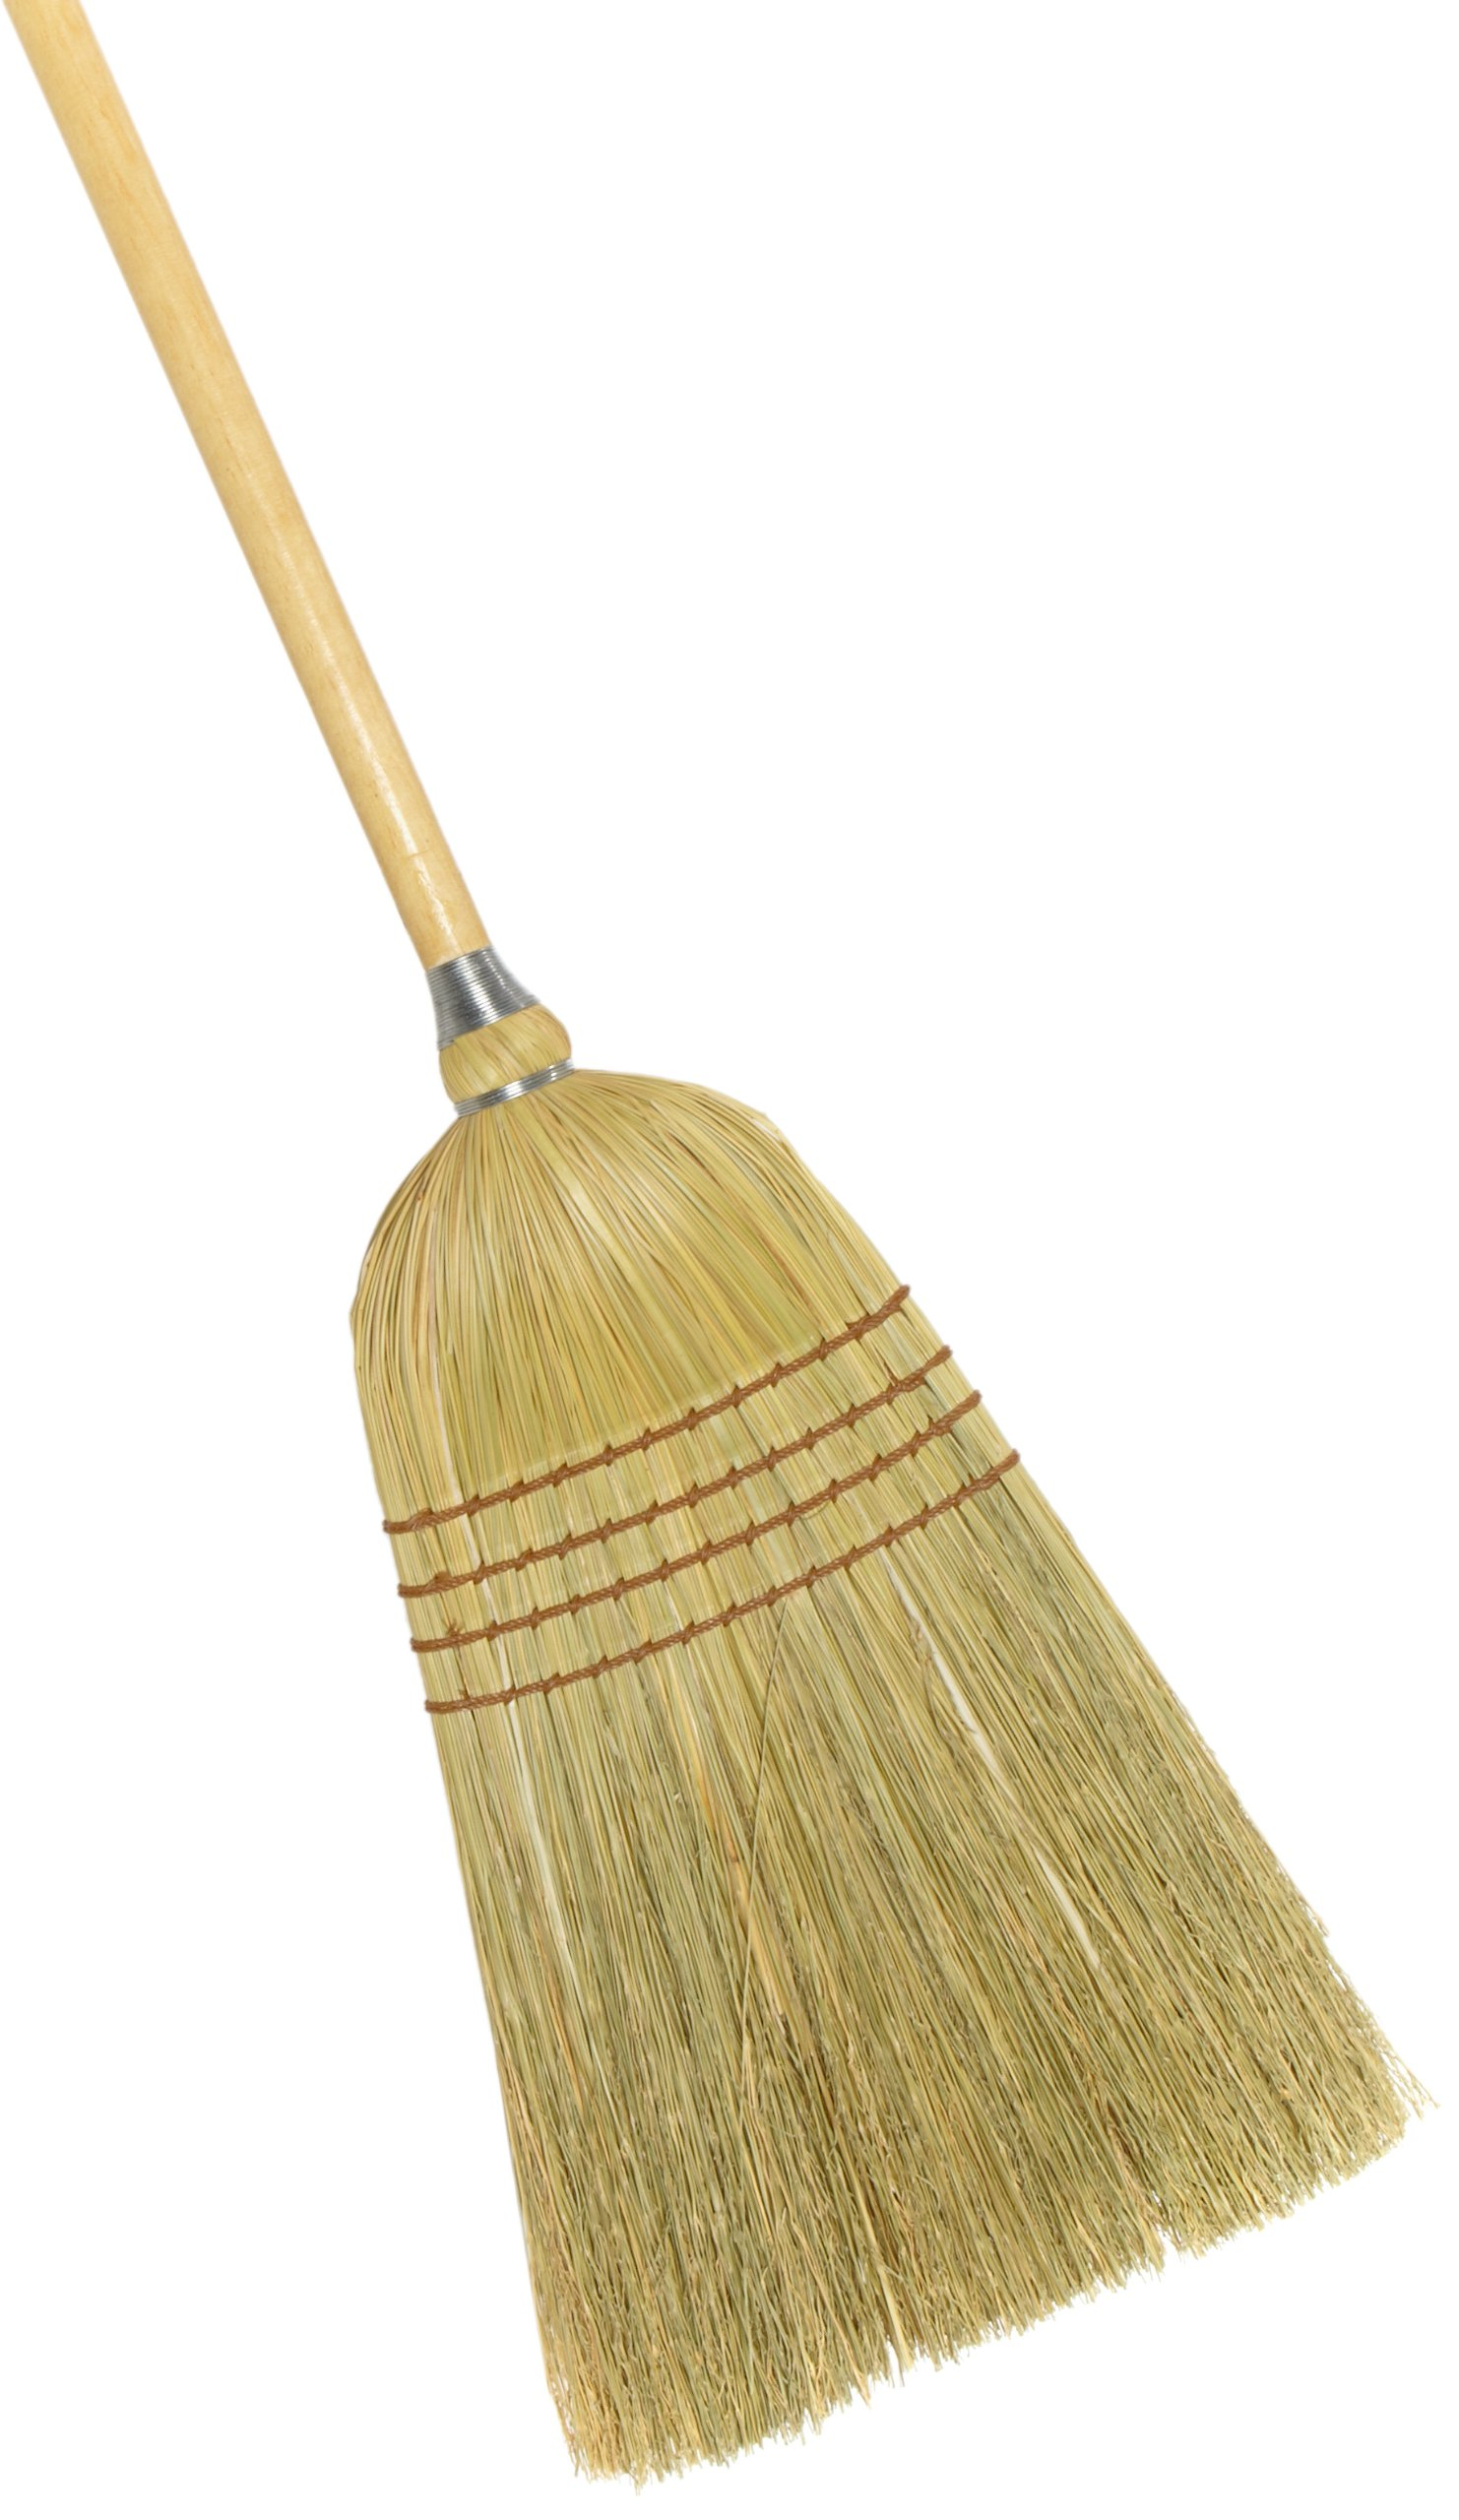 Weiler 44009 Corn Fiber Light Industrial Upright Broom with Wood Handle, 1-1/2'' Head Width, 54'' Overall Length by Weiler